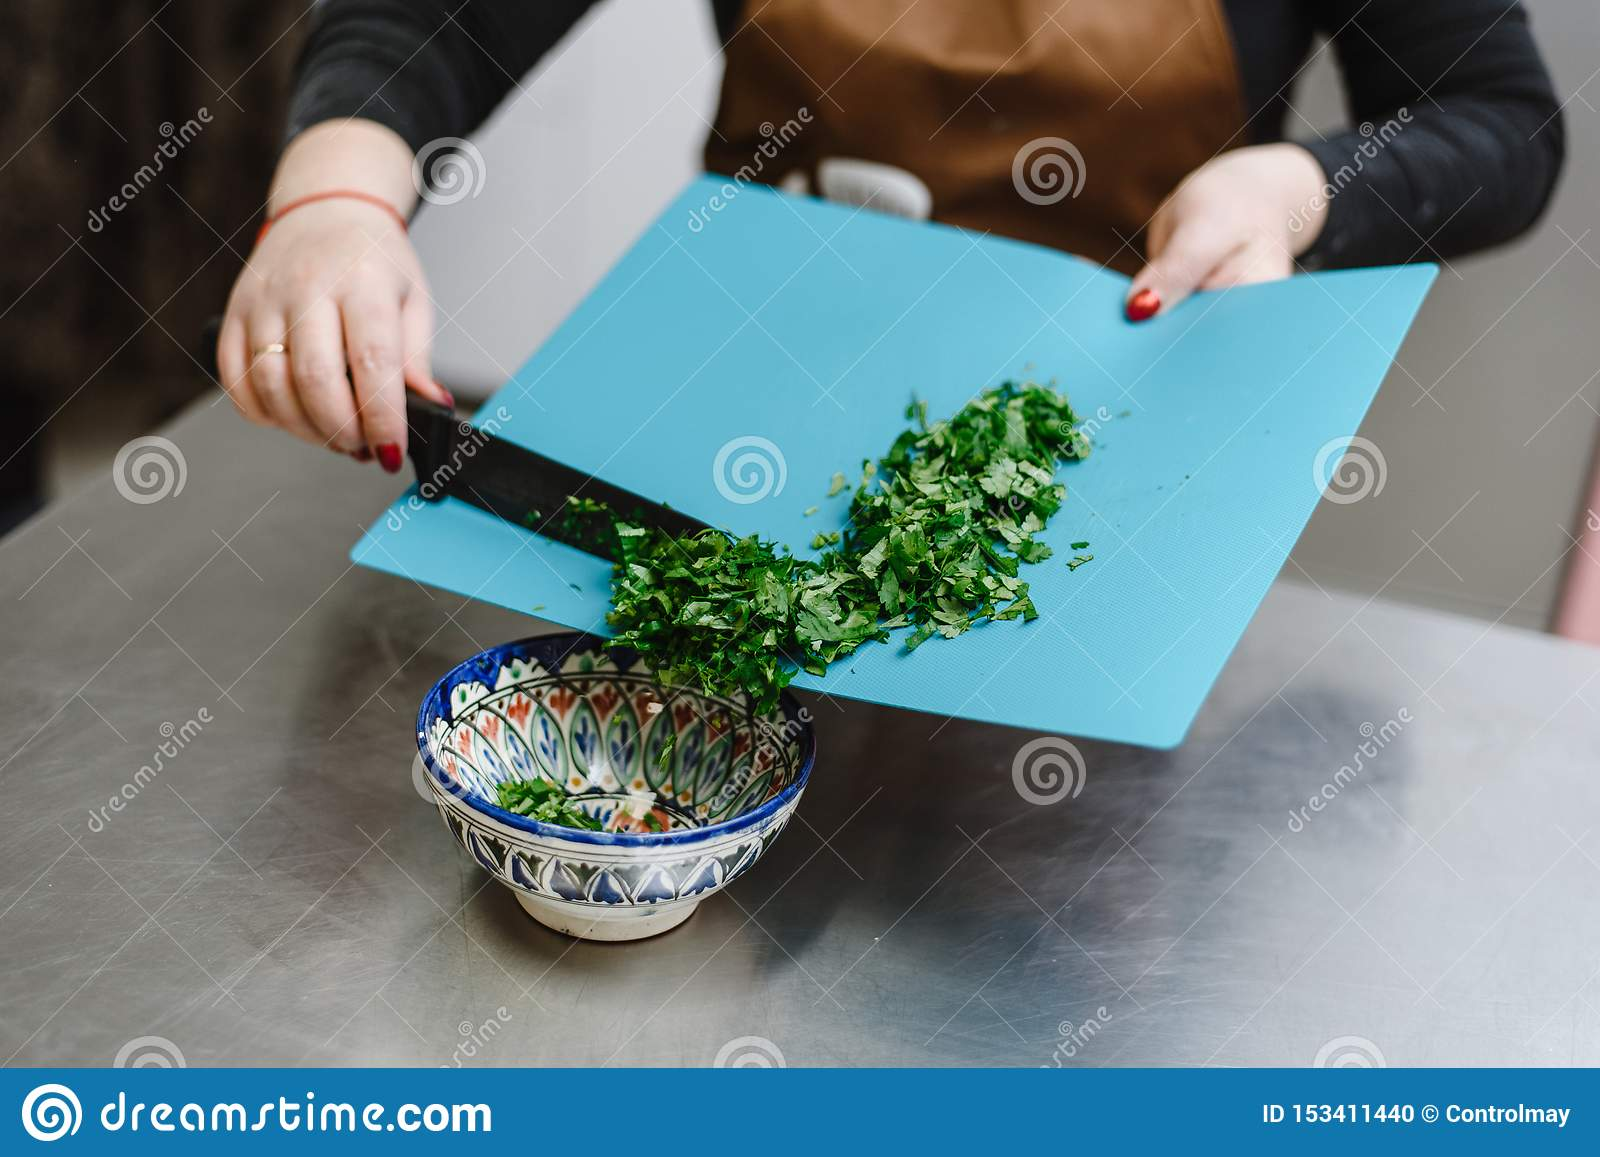 The girl cuts greens, onions, parsley and various seasonings with a knife on a cutting board. Woman cook cuts salad for cooking.